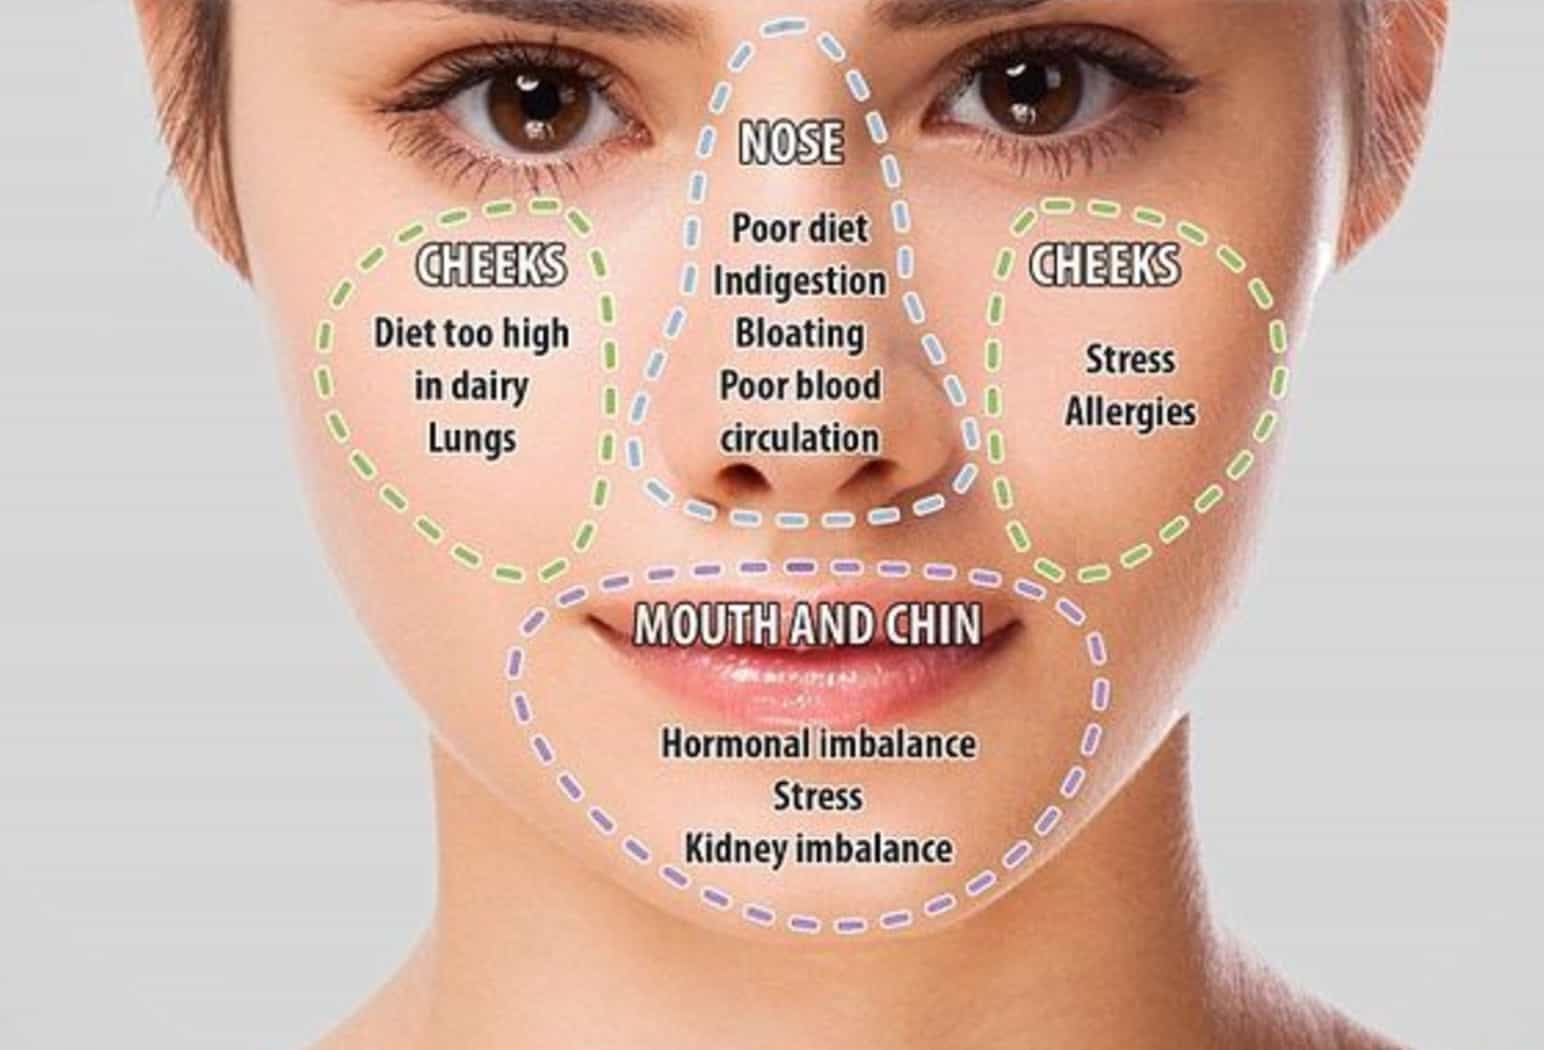 Face Mapping Spots Face Mapping Guidelines to Treat Spots and Problem Skin